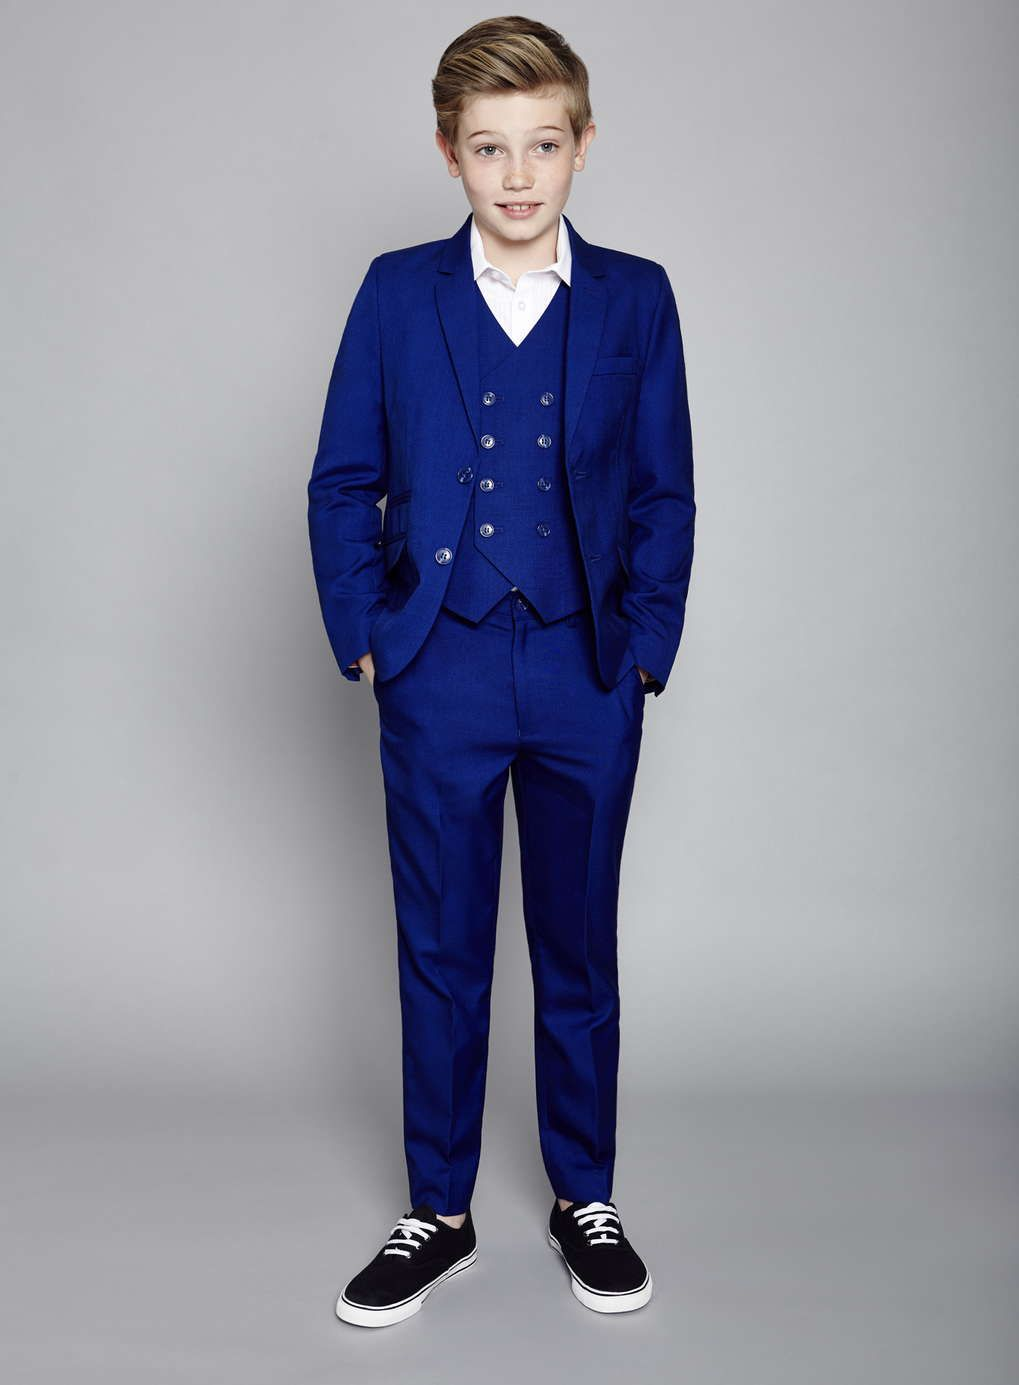 BHS JRM Blue Check Suit Jacket | Wedding Party Outfits | Pinterest ...